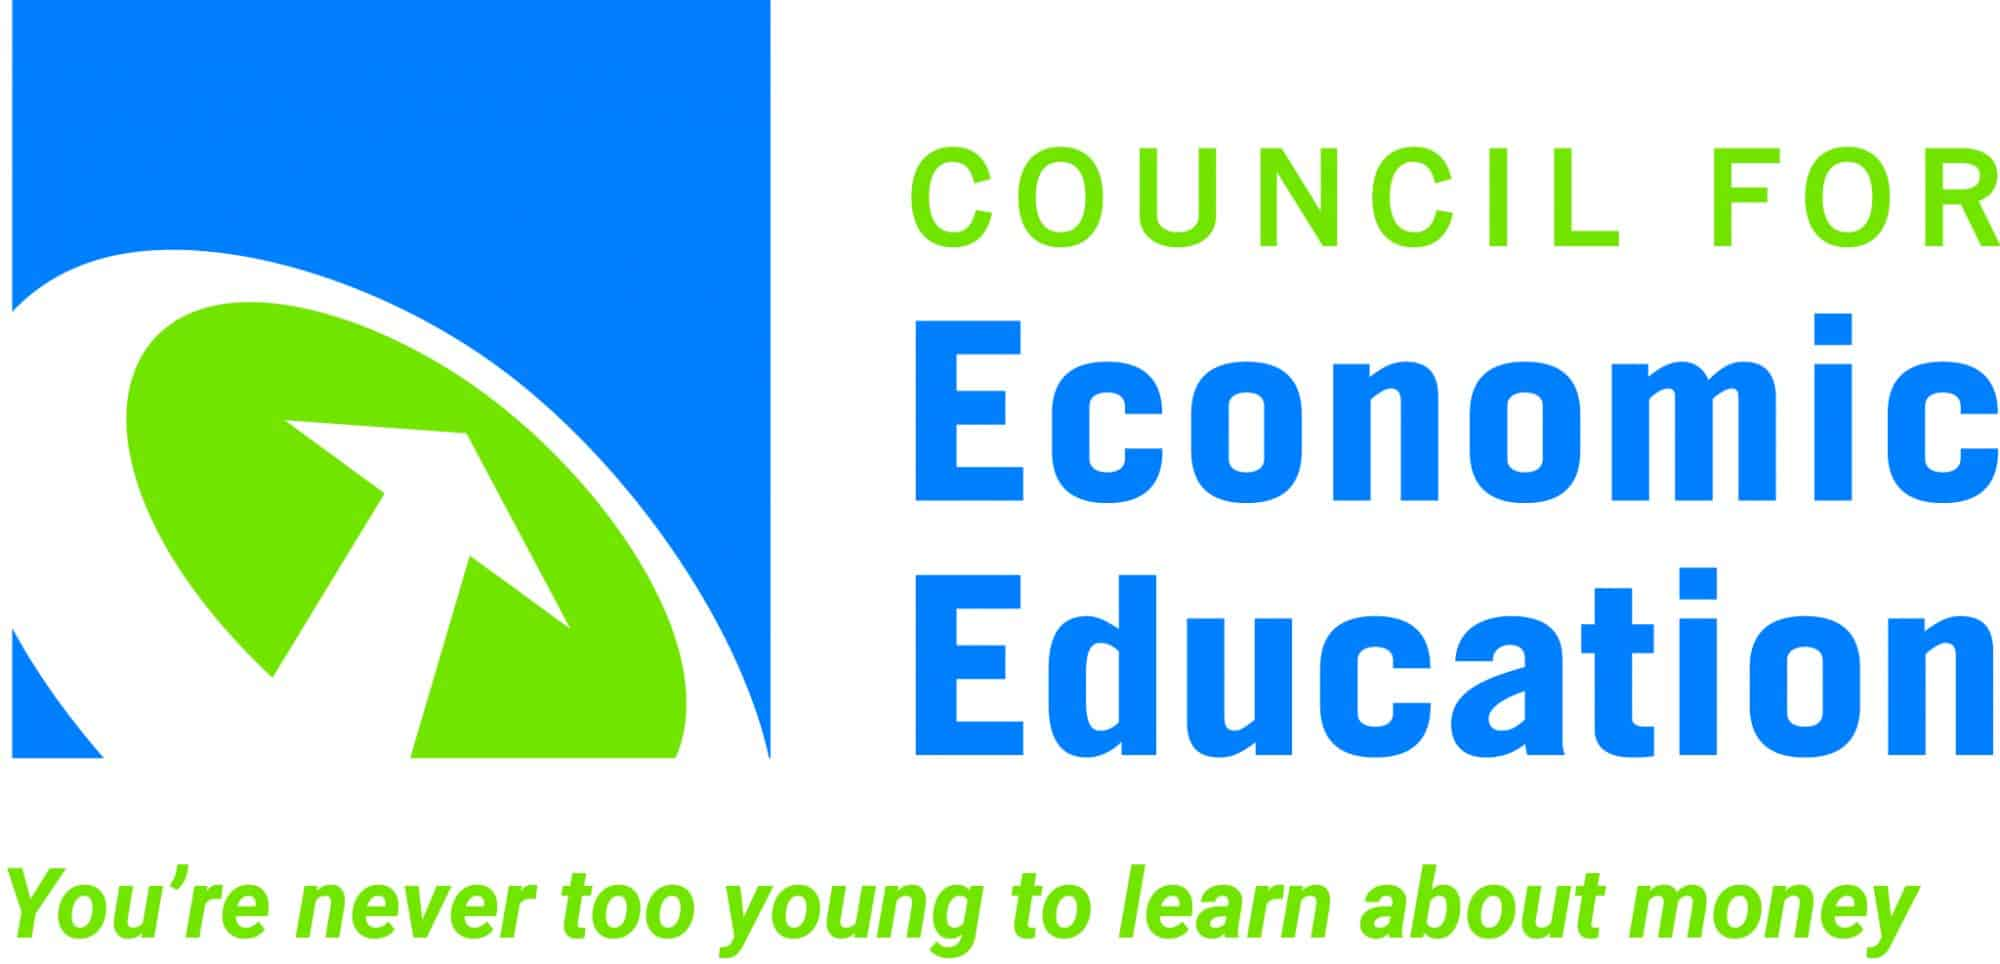 Council-for-Economic-Education-logo